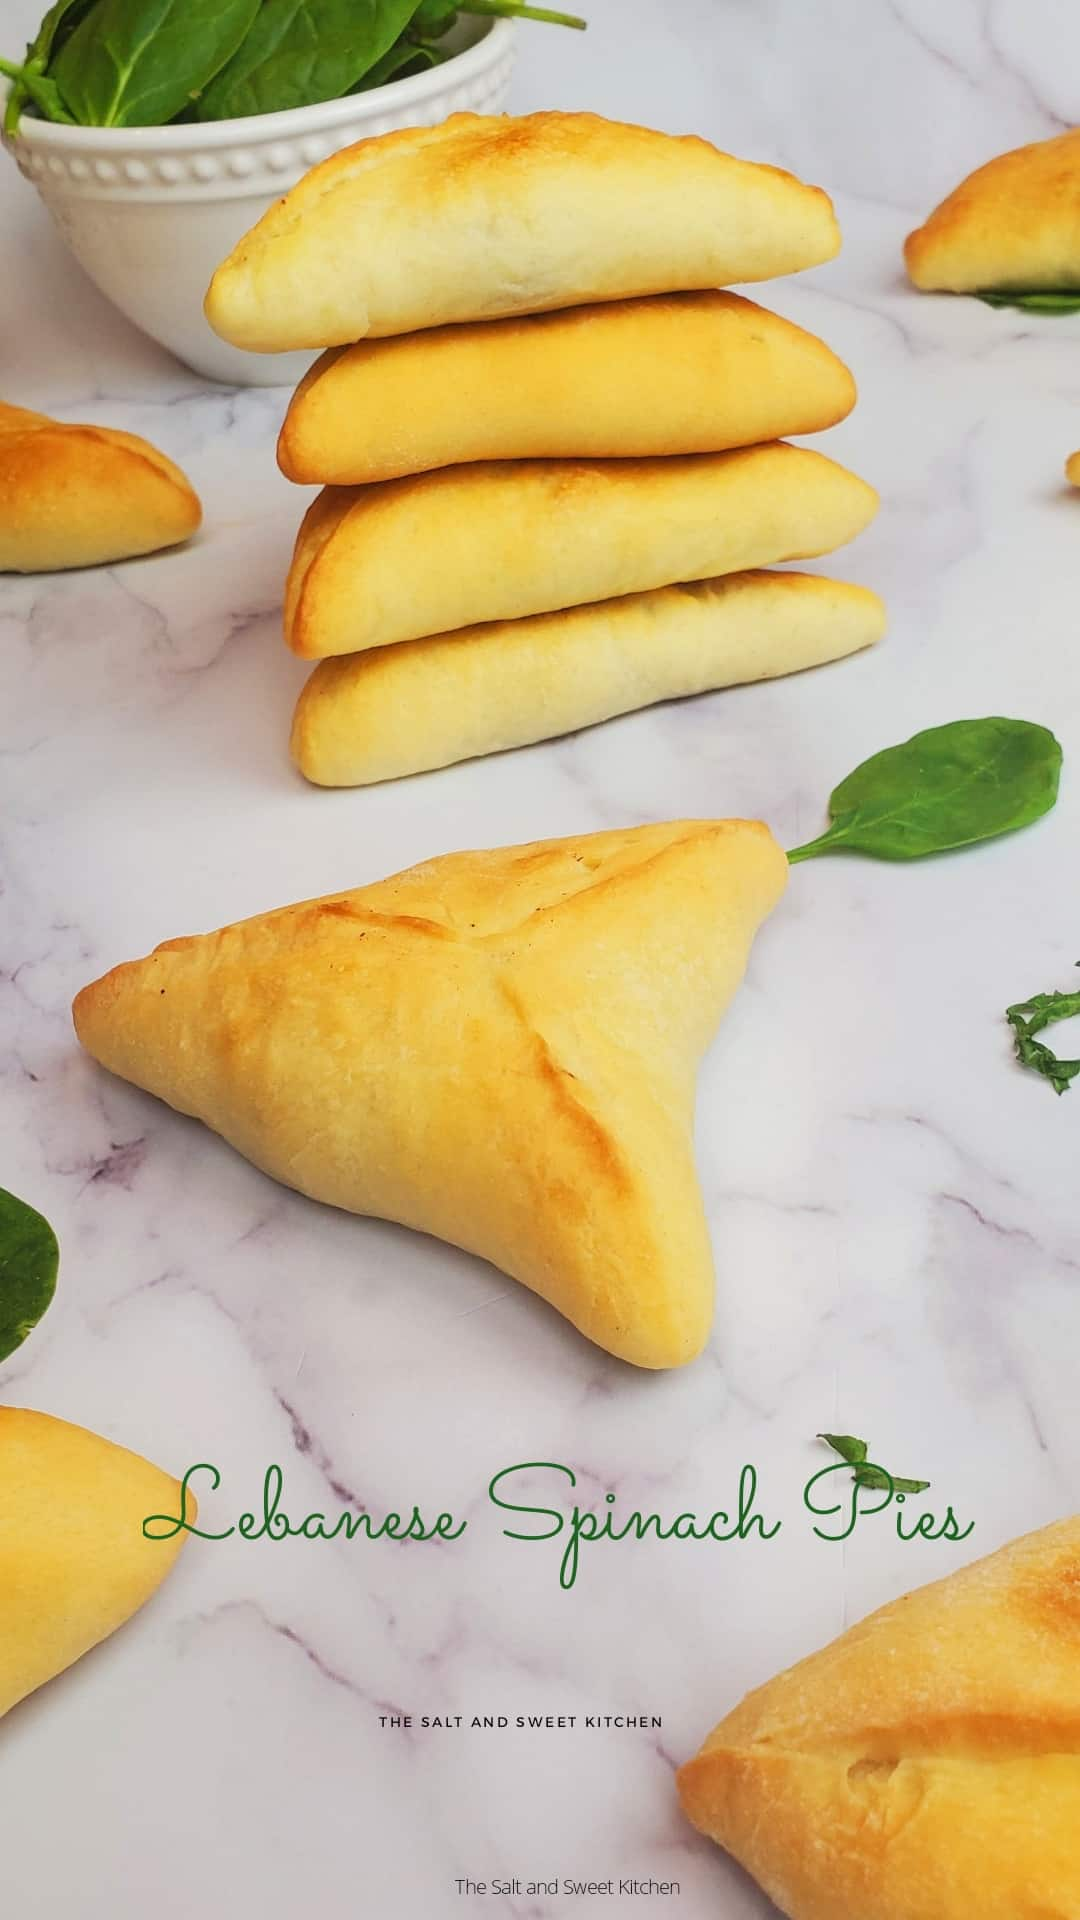 Spinach pies Lebanese/ Spinach pies Middle Eastern/ fatayer recipe/ fatayer spinach